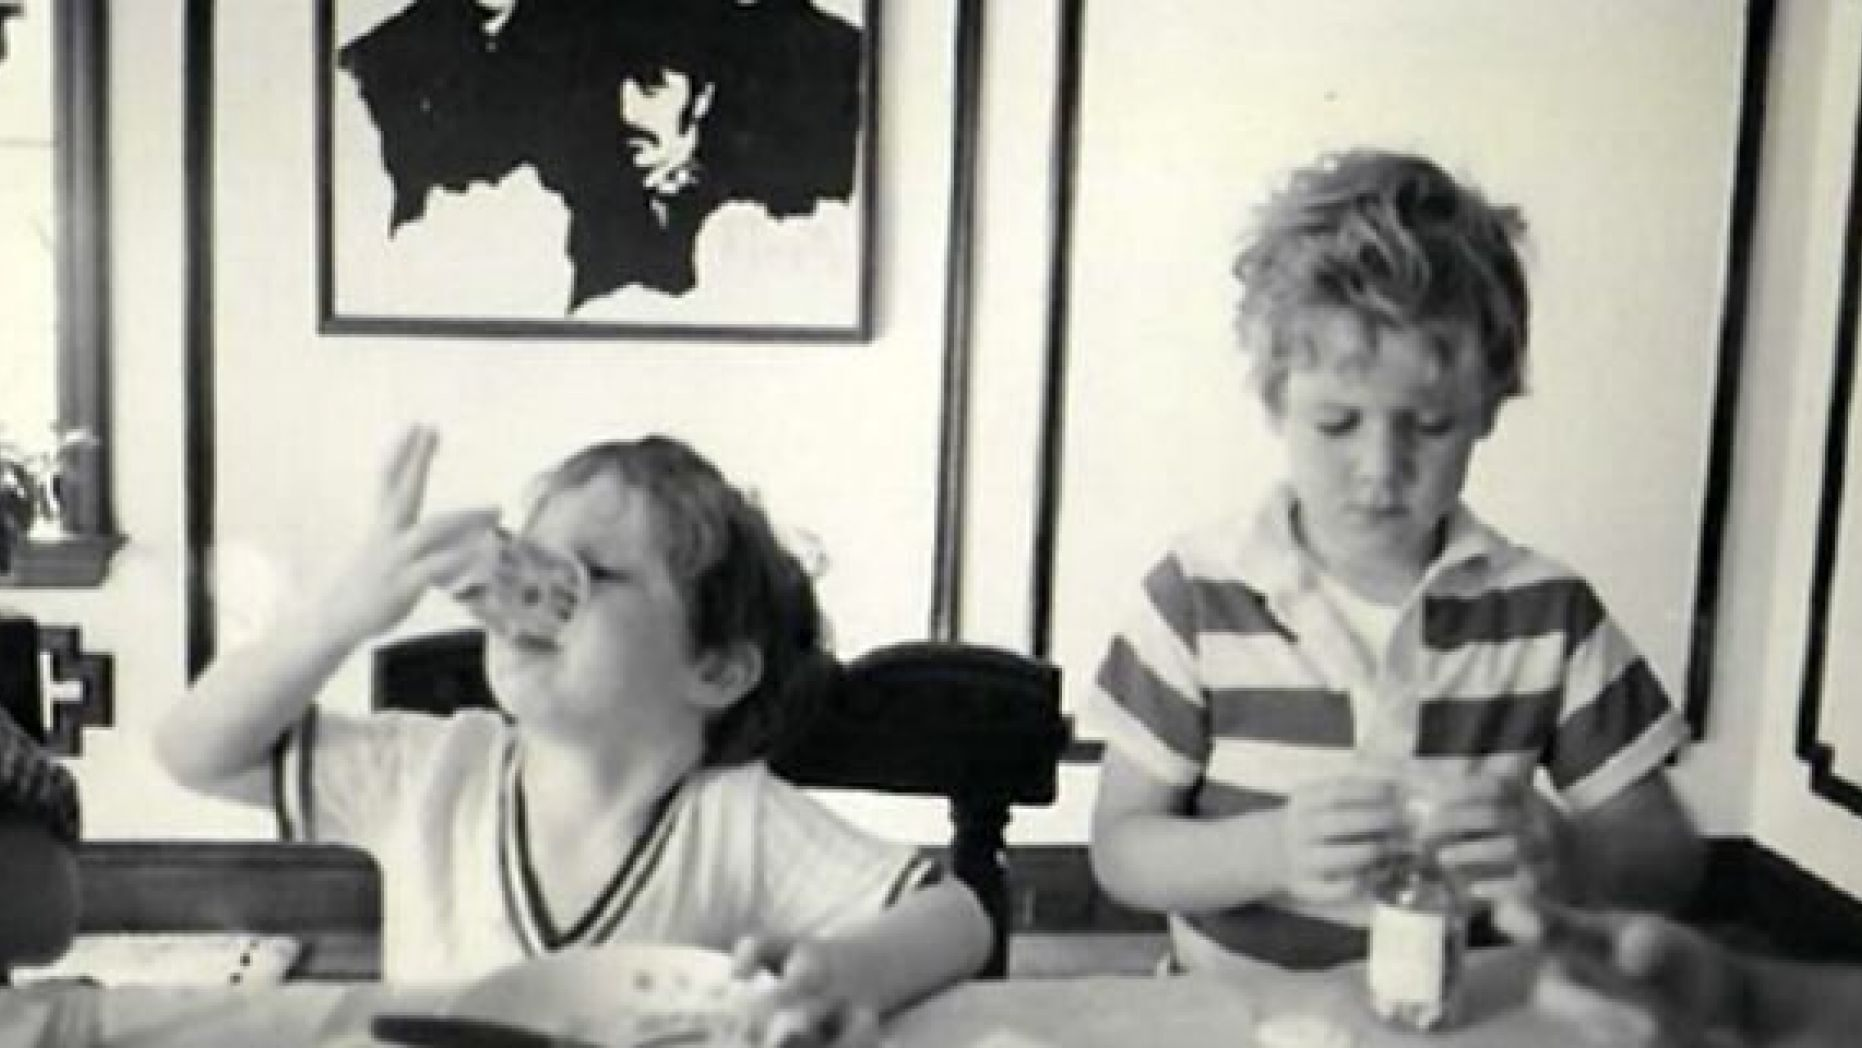 Mike photographed with his younger brother Jack.